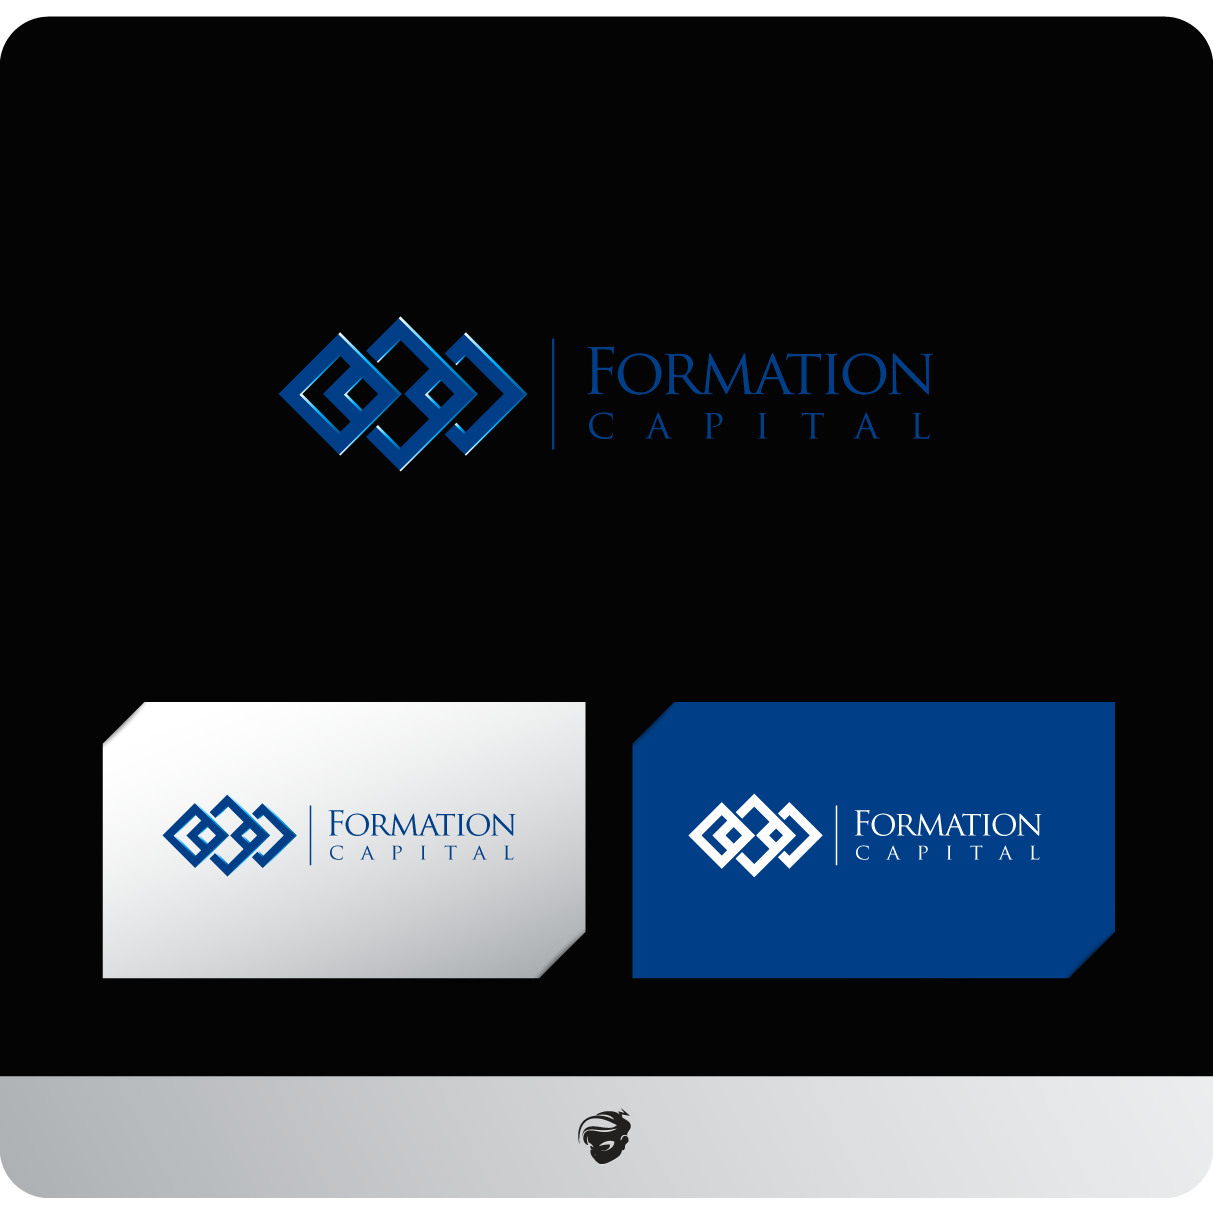 Logo Design by zesthar - Entry No. 232 in the Logo Design Contest Inspiring Logo Design for Formation Capital.